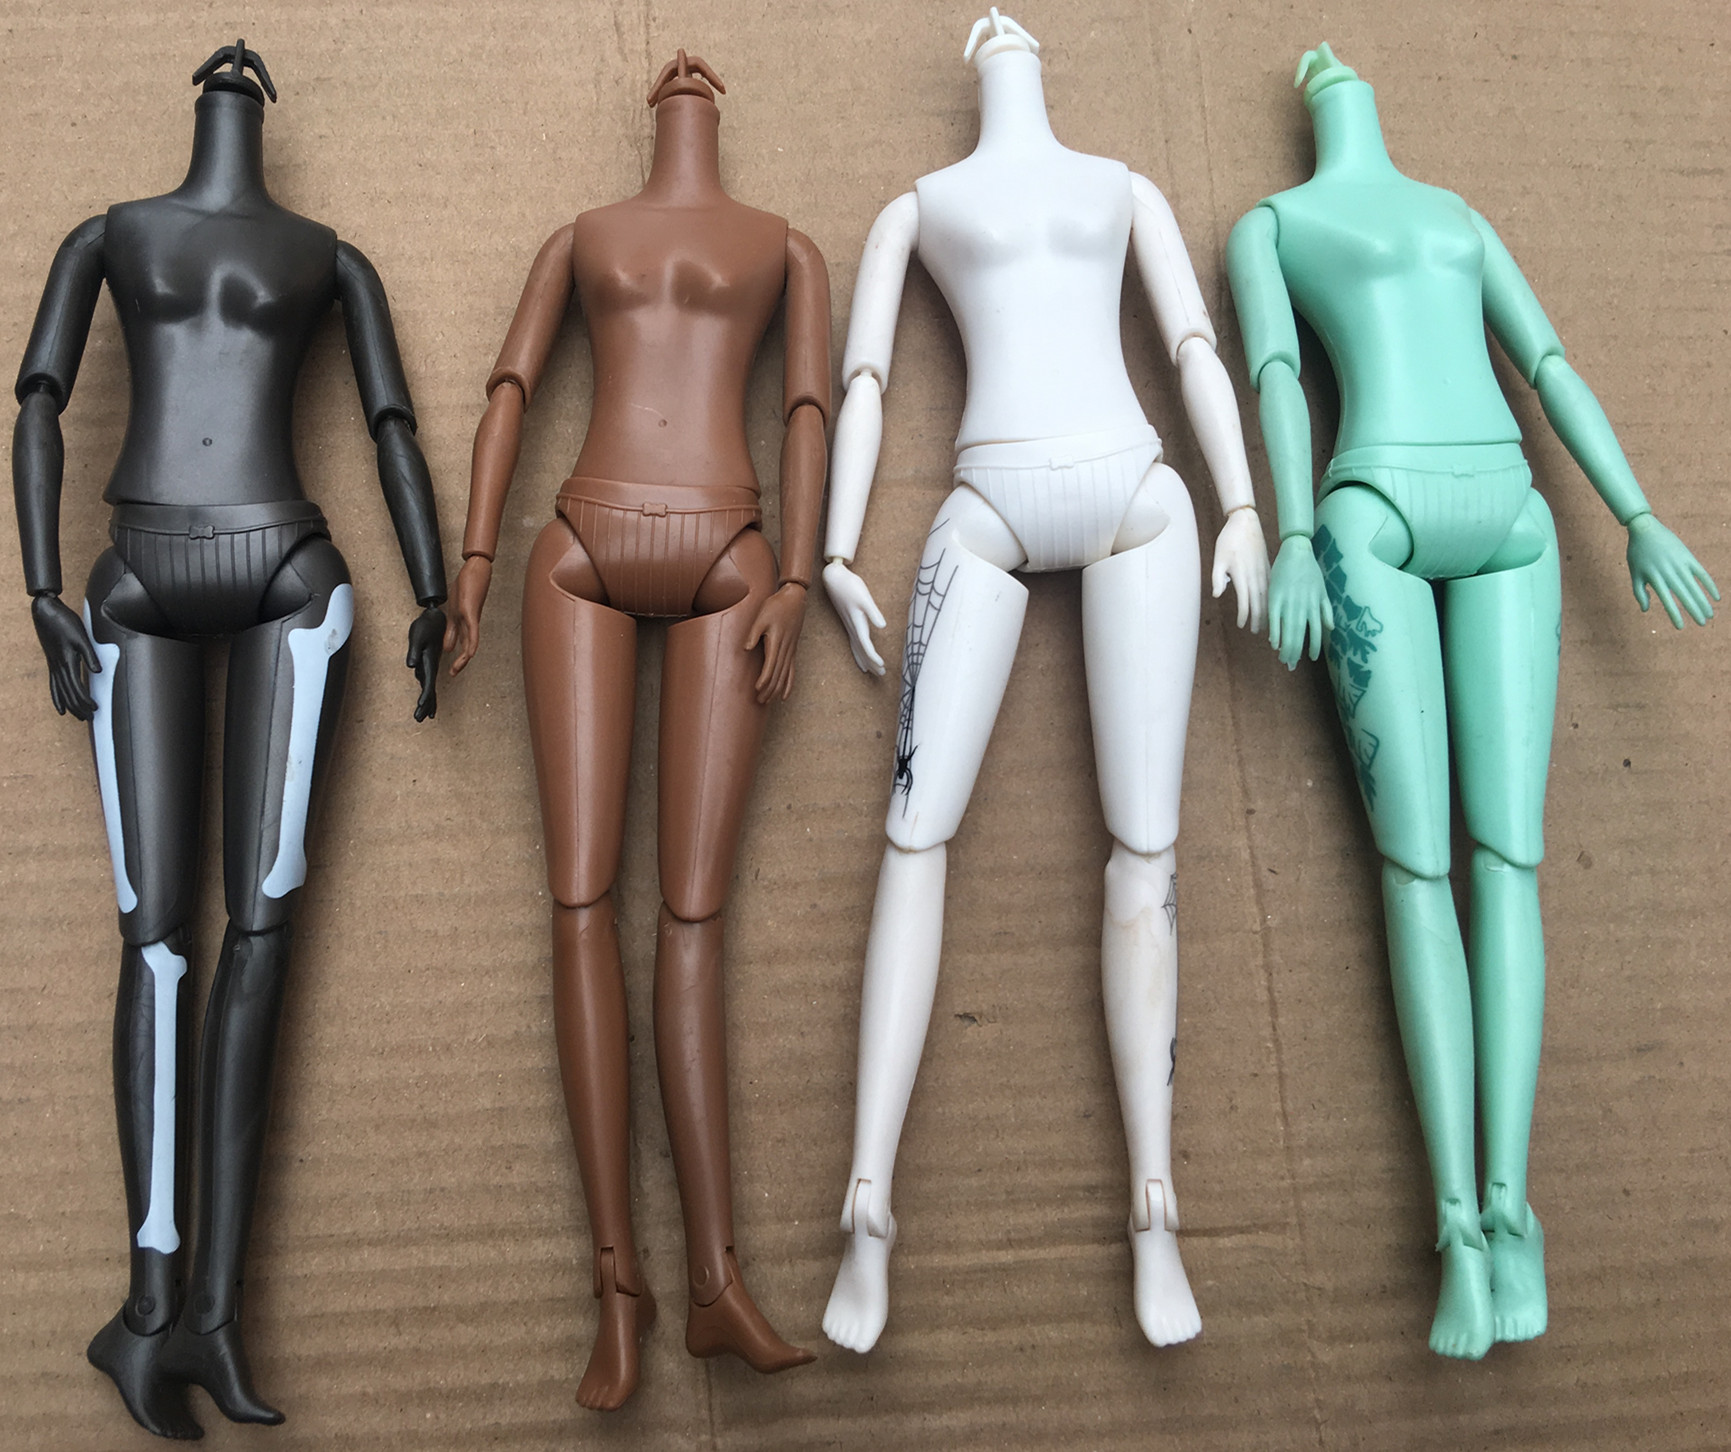 Quality Doll Body Multi-Joints Movable 1/6 Doll Toy Body Brown Black Green Doll Yoga Slim Fat Body Girl DIY Dressing Toy Figures